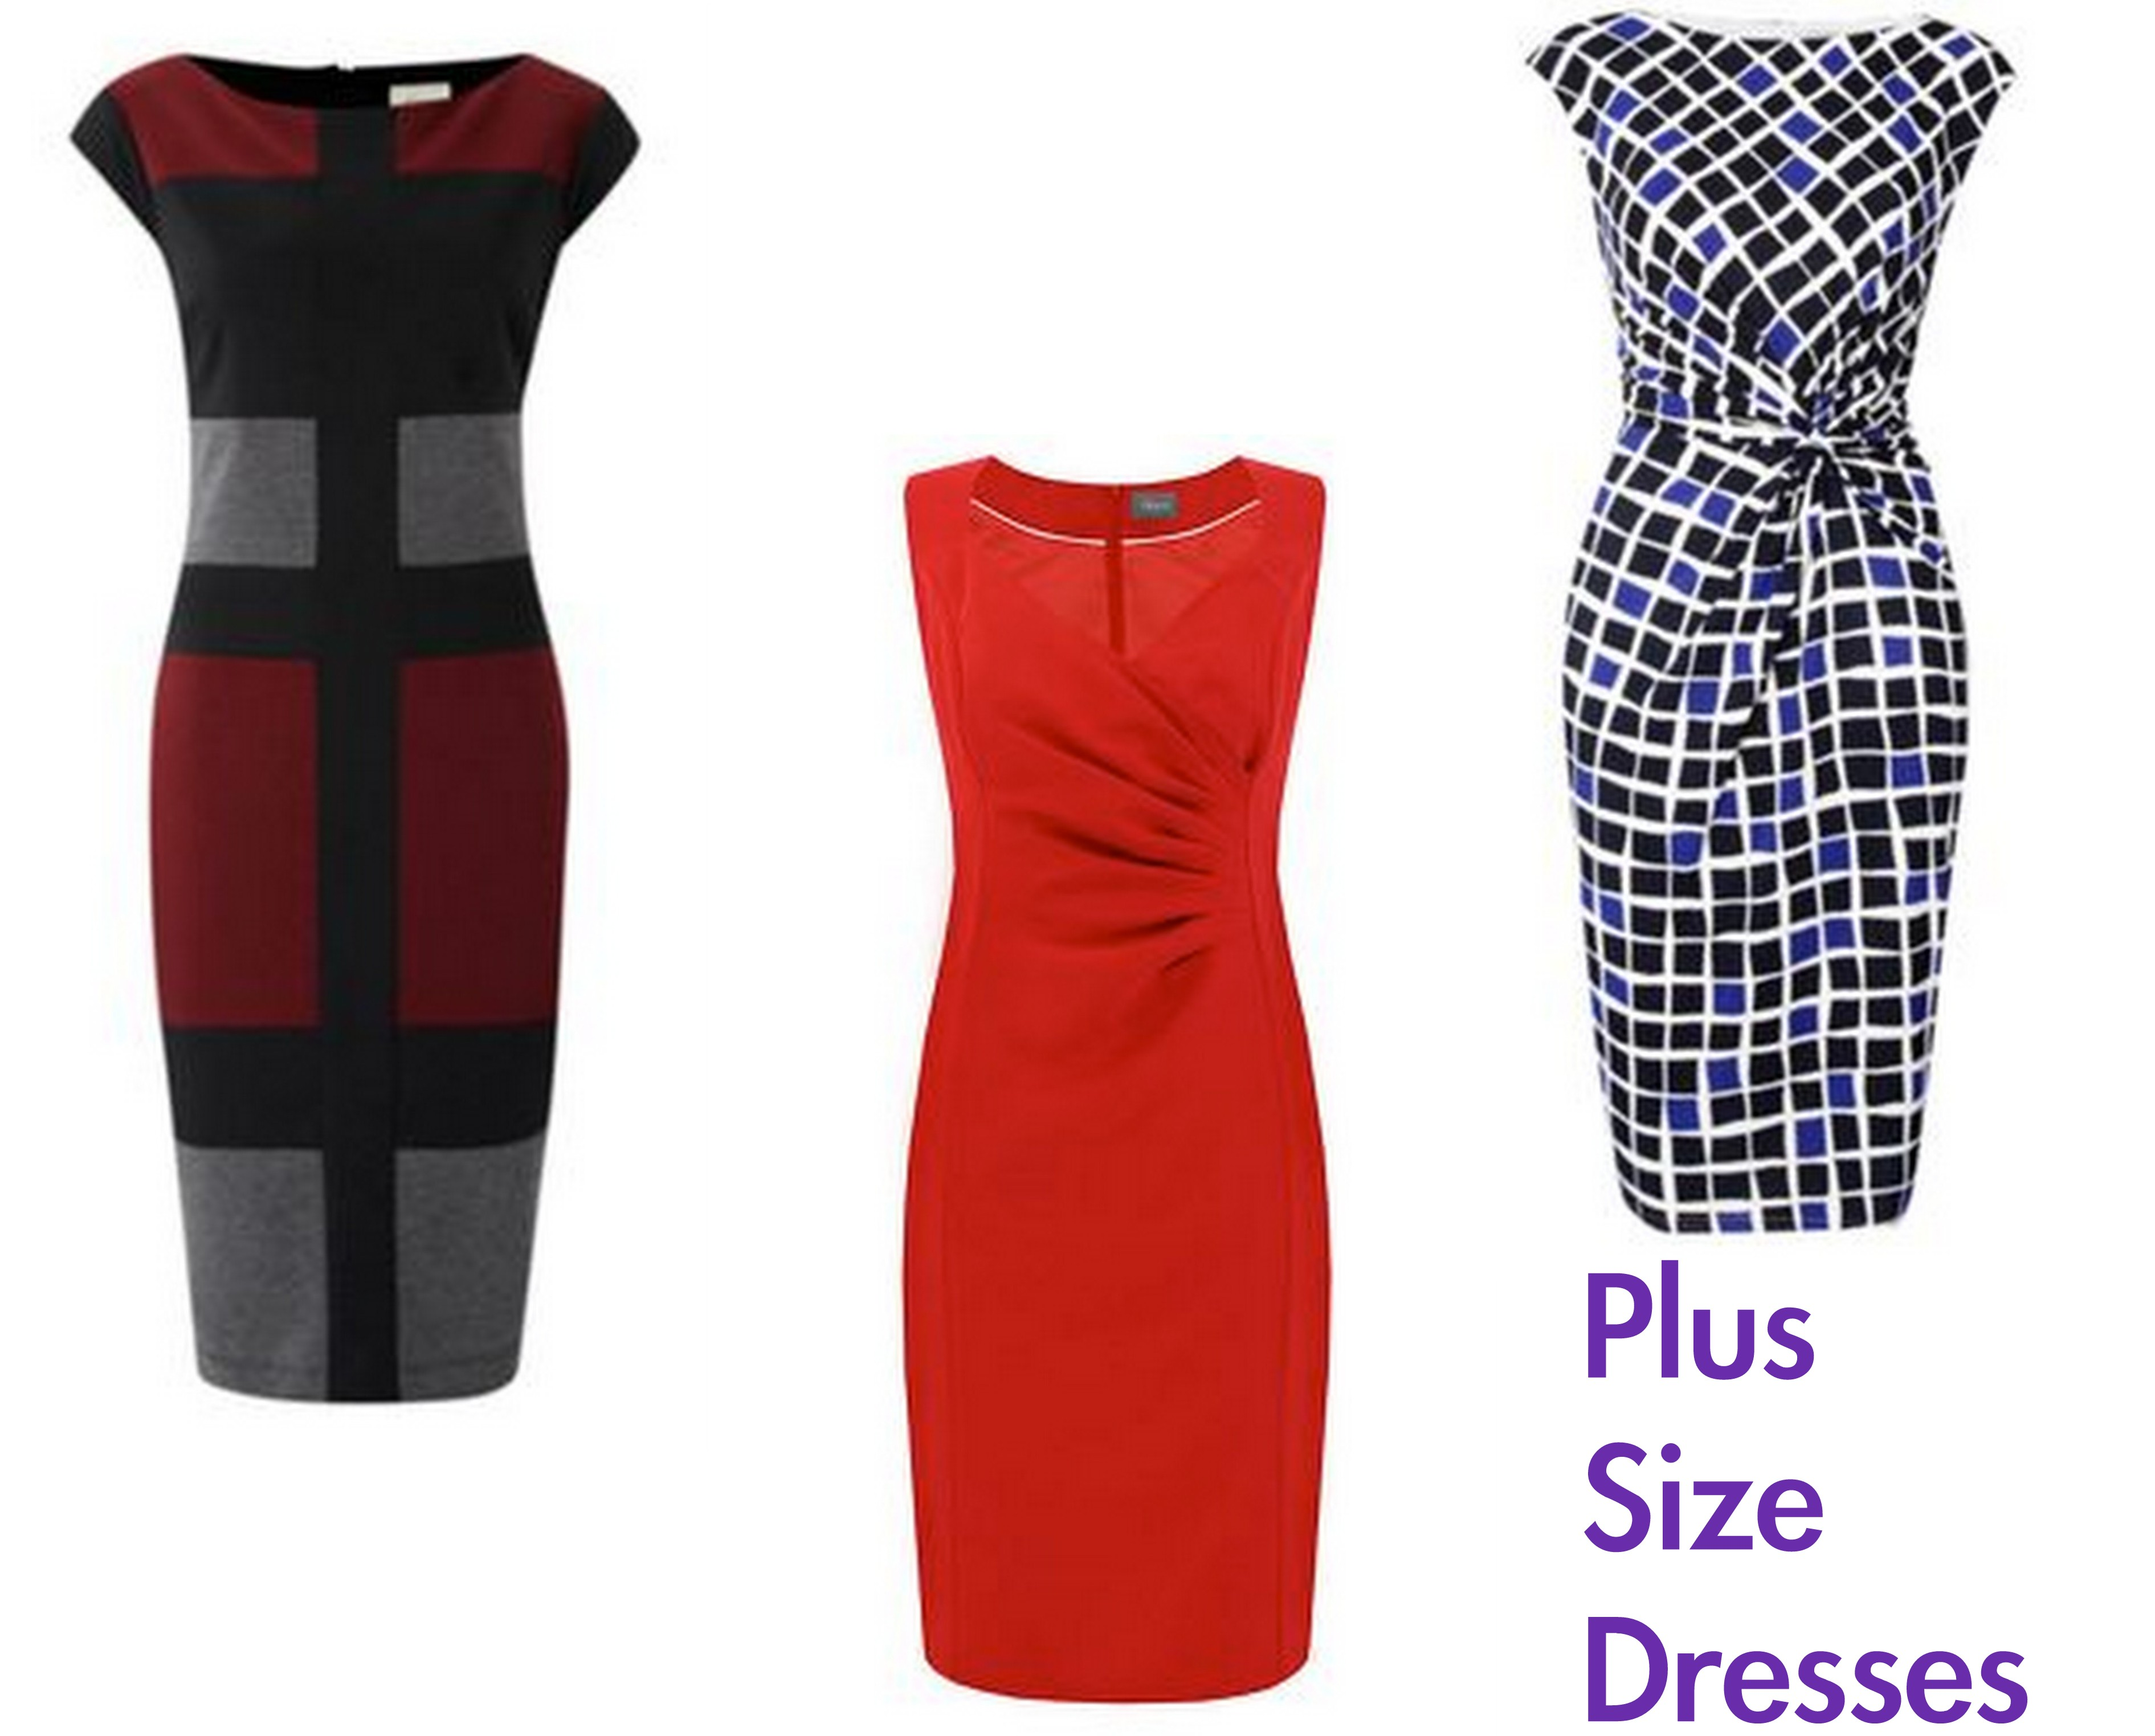 China house of fraser plus size dresses for cash